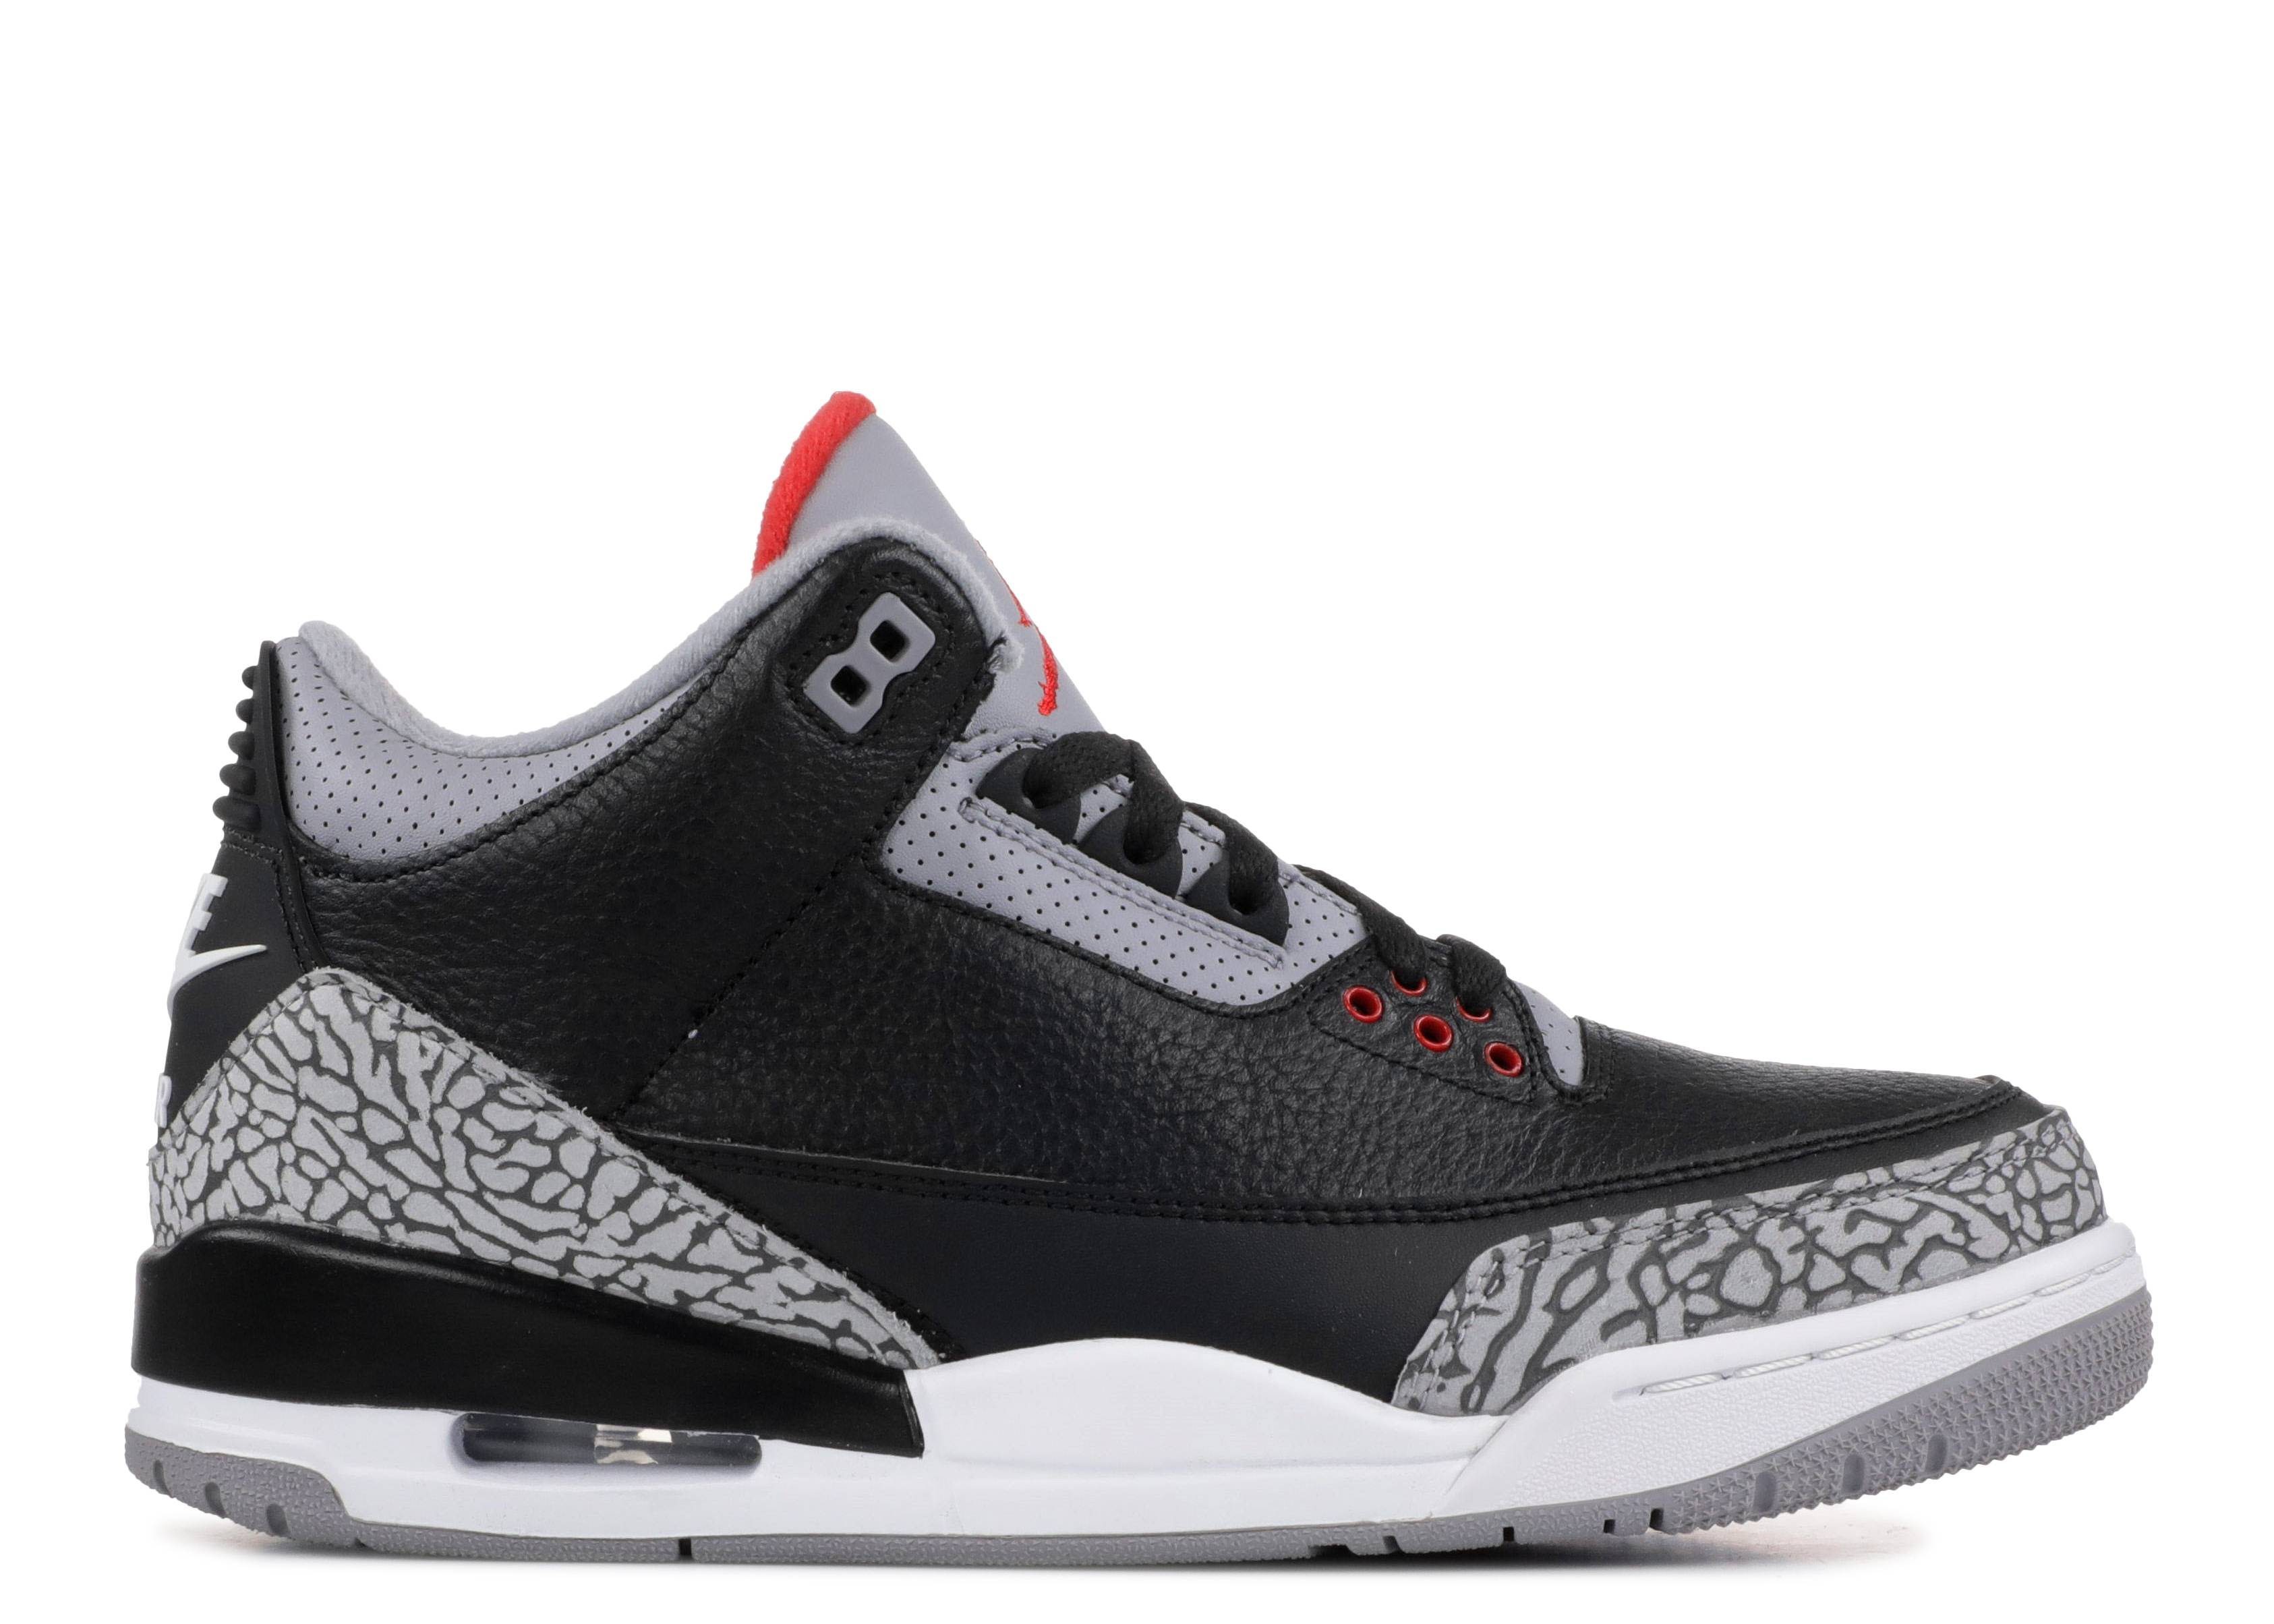 low priced 90b1f d8696 Air Jordan 3 (III) Shoes - Nike | Flight Club